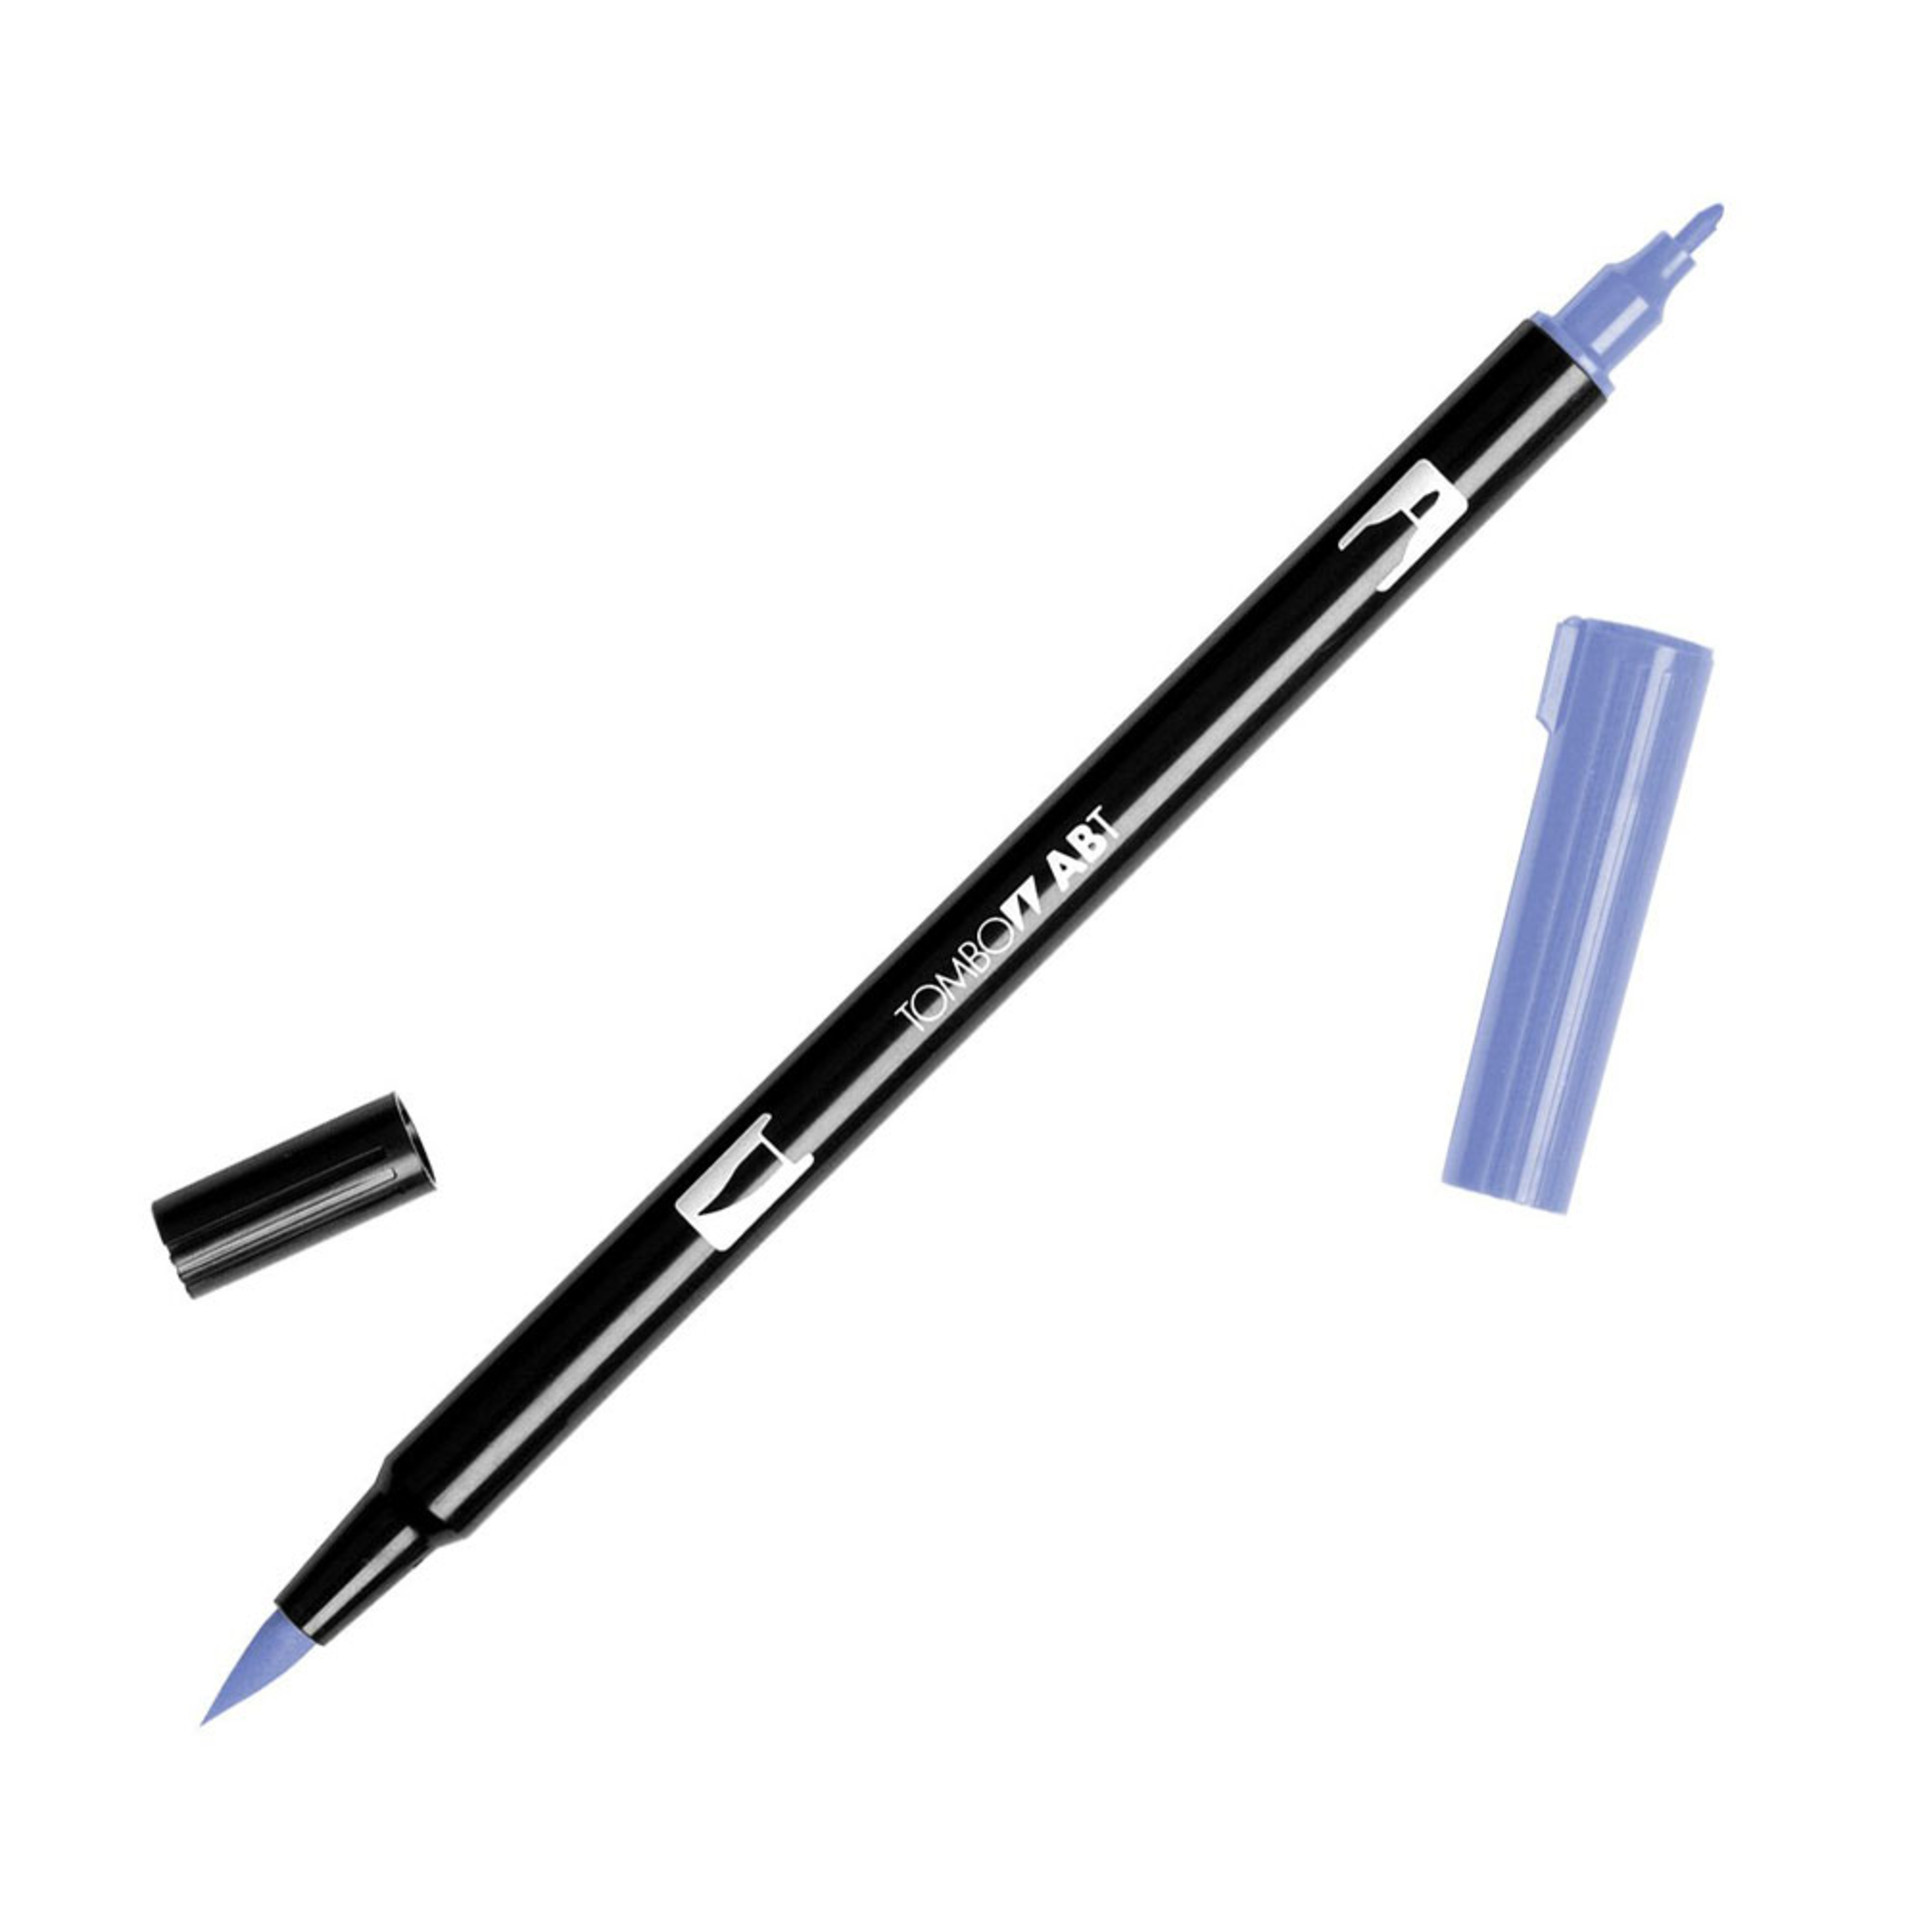 Tombow Dual-Tip Brush Marker Pen – Periwinkle